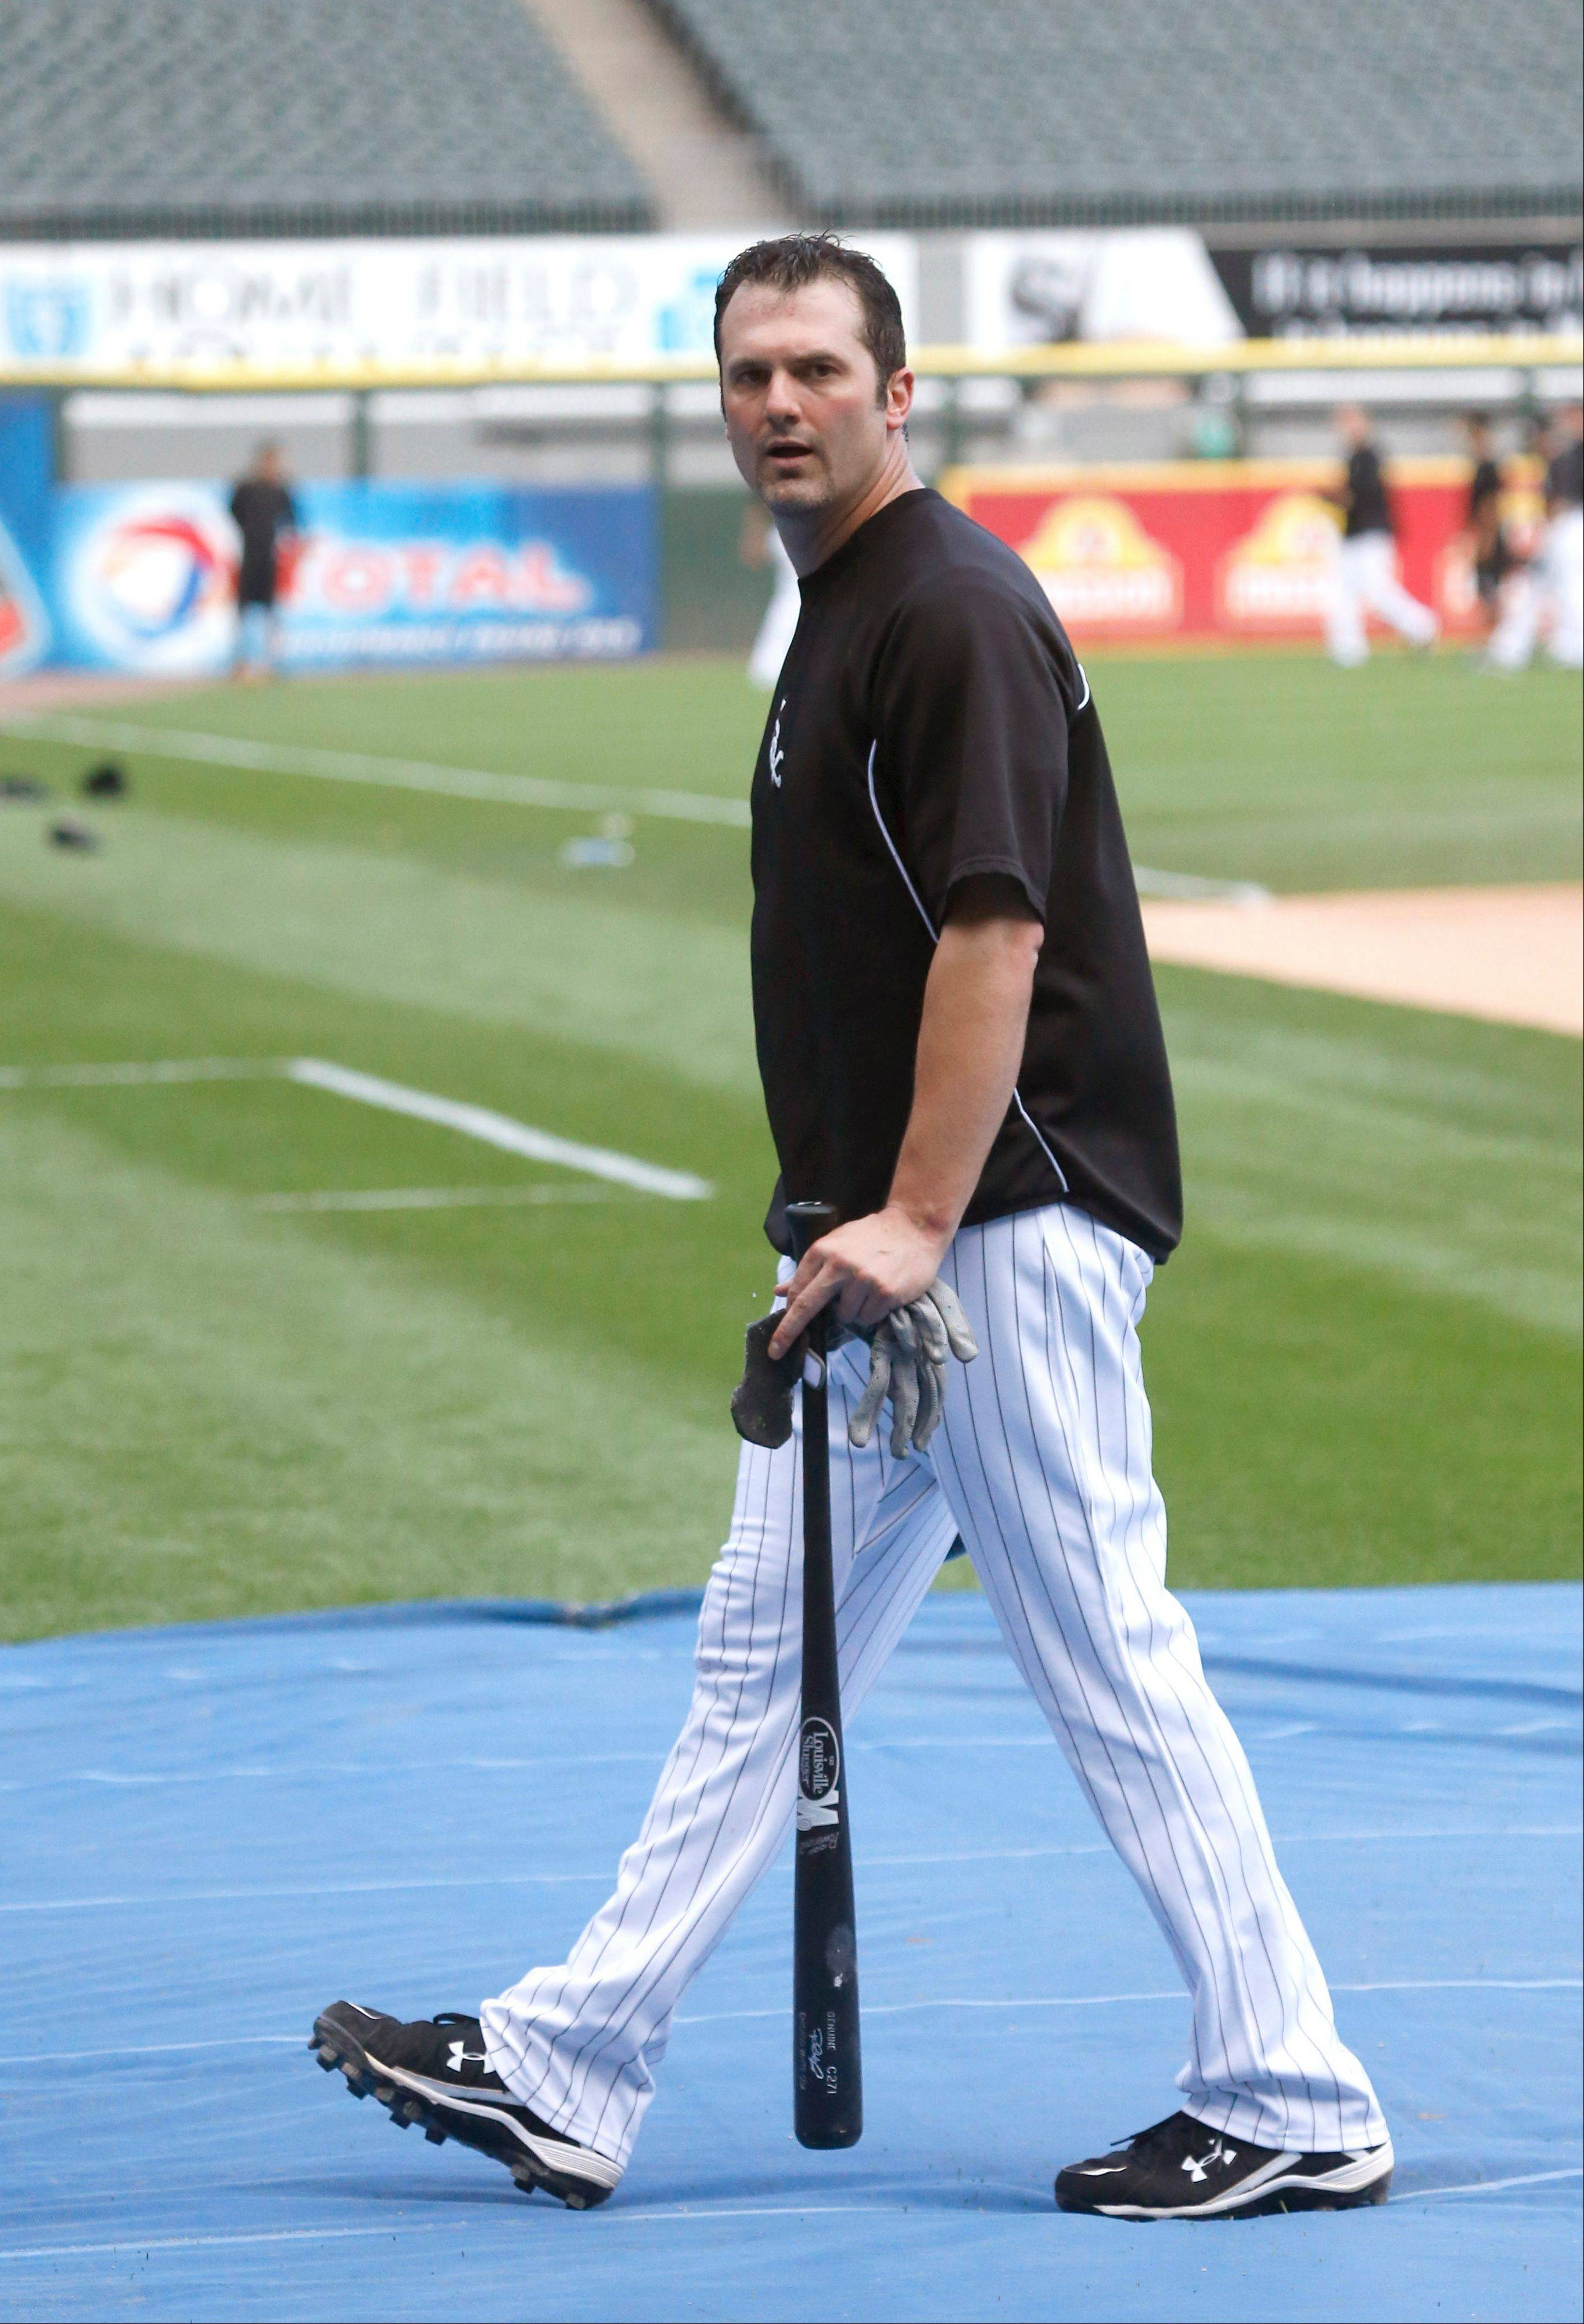 White Sox first baseman/DH Paul Konerko heads to the dugout during batting practice before Monday night's game against the Tigers.